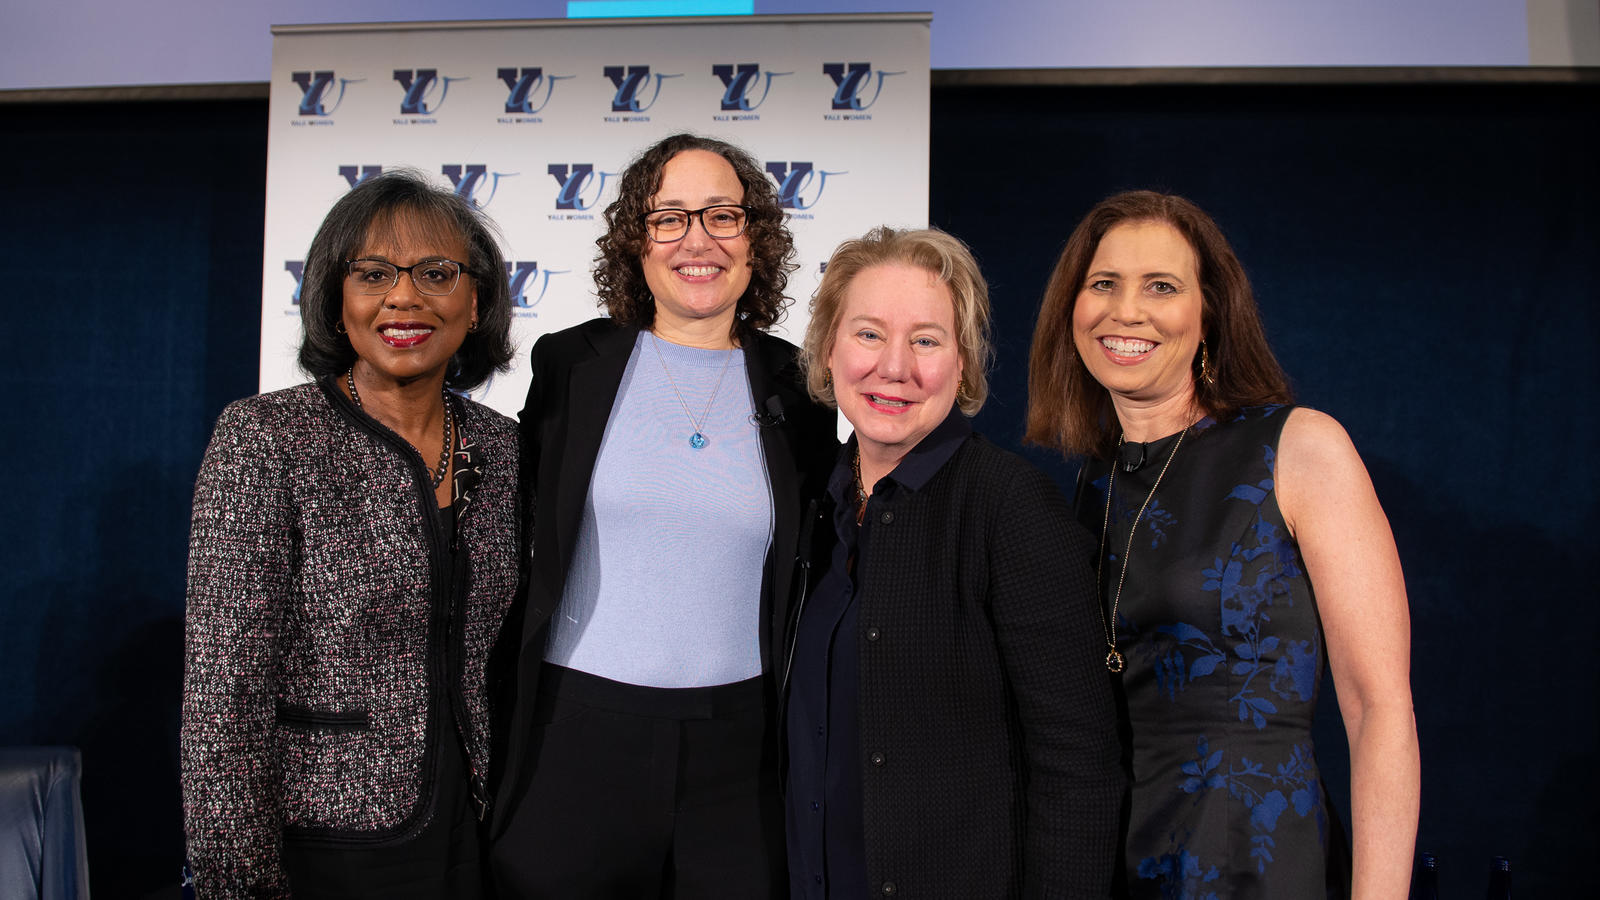 The recipients of the lifetime achievement award gather during this year's YaleWomen Awards for Excellence.